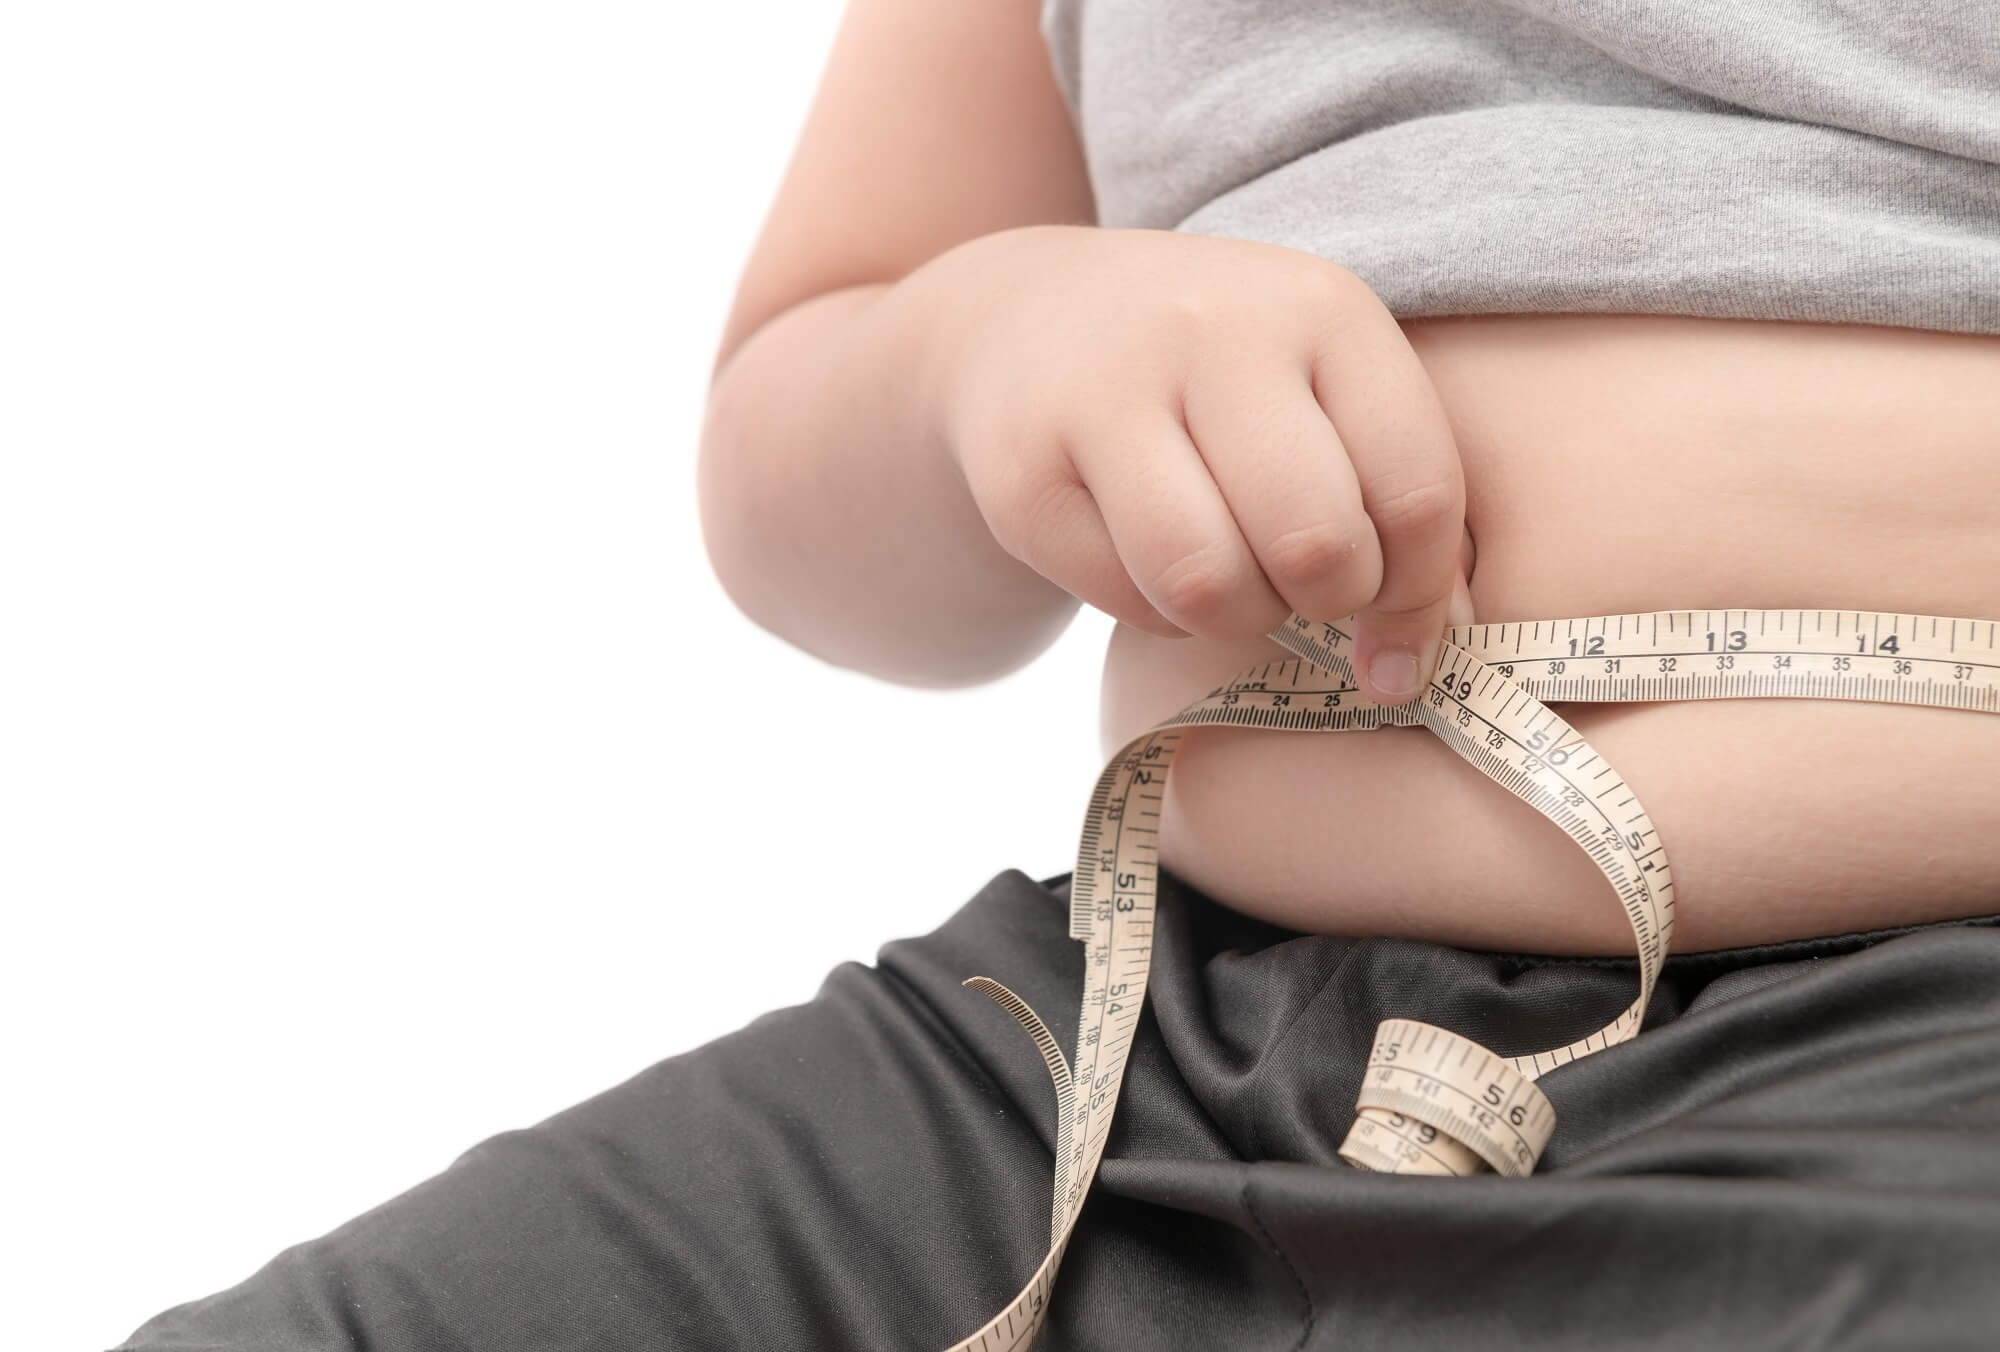 Odds of Overweight/Obesity Up for Children With Autism